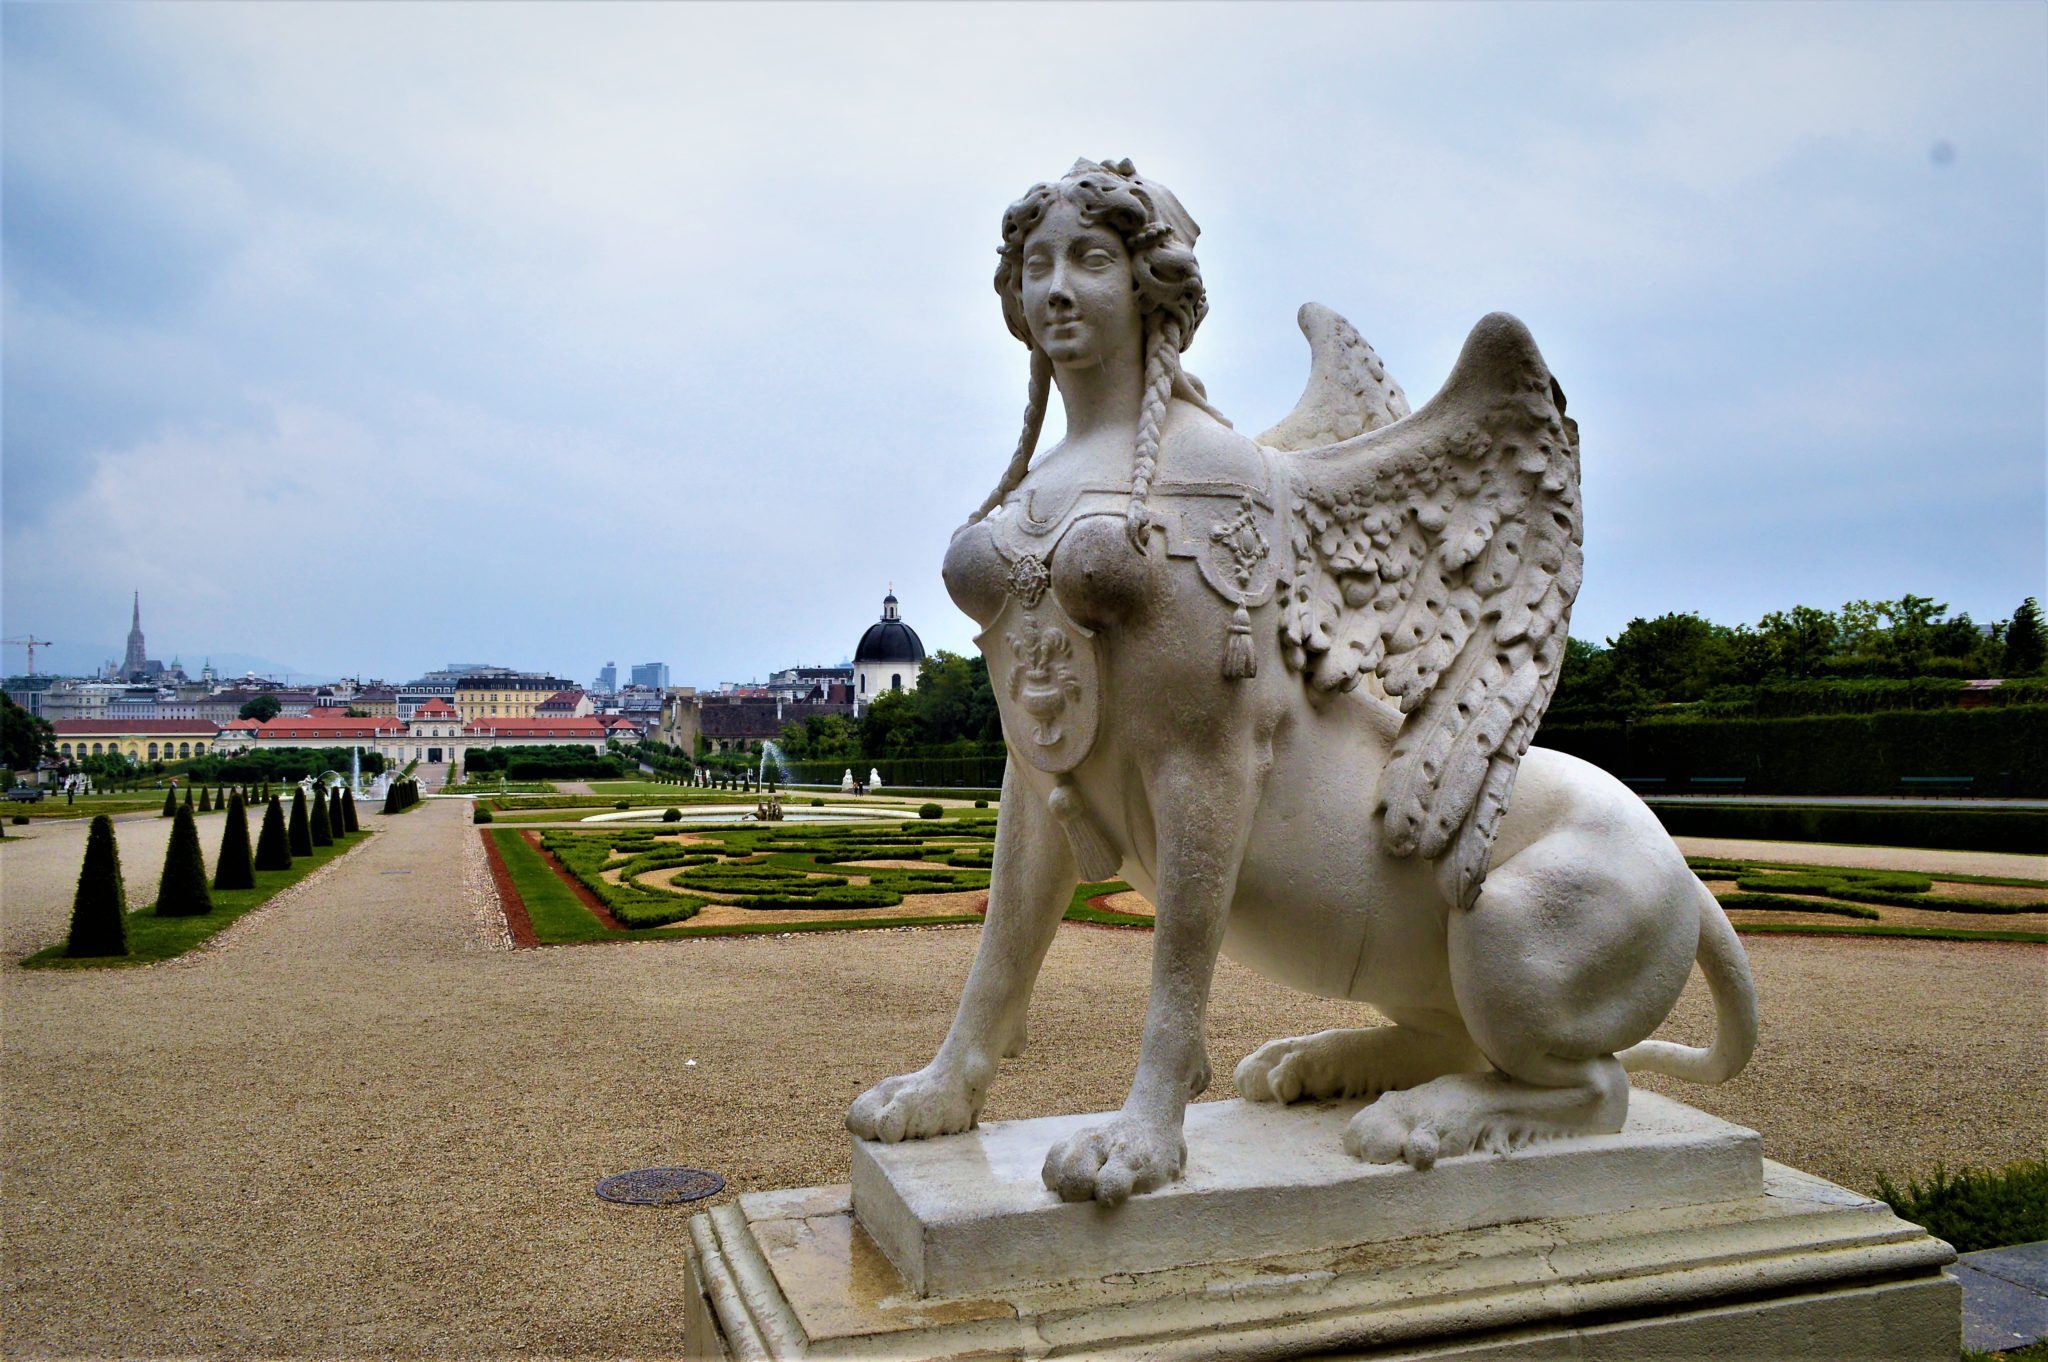 Woman lion statue, Schönbrunn Palace, 2 days in Vienna, Austria